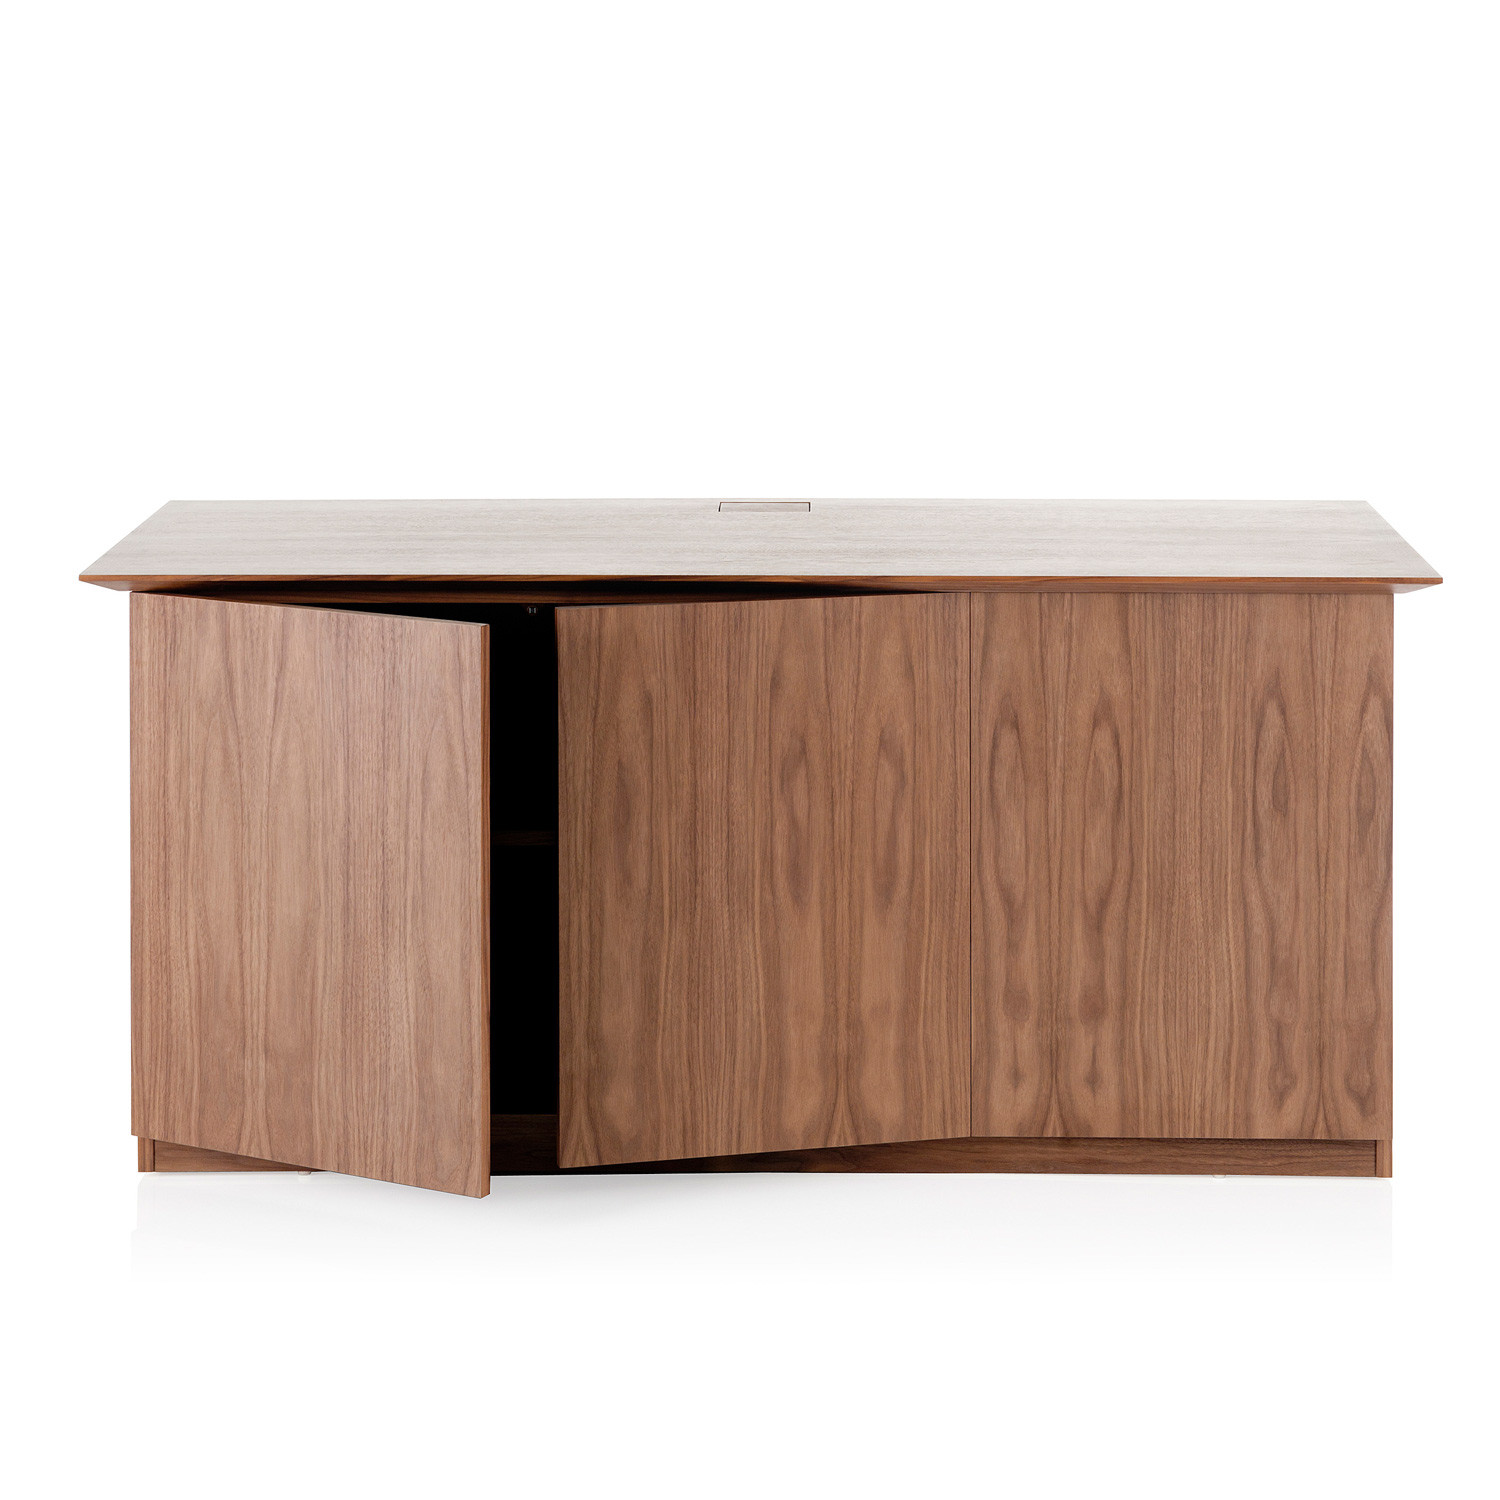 Pars Meeting Room Credenza